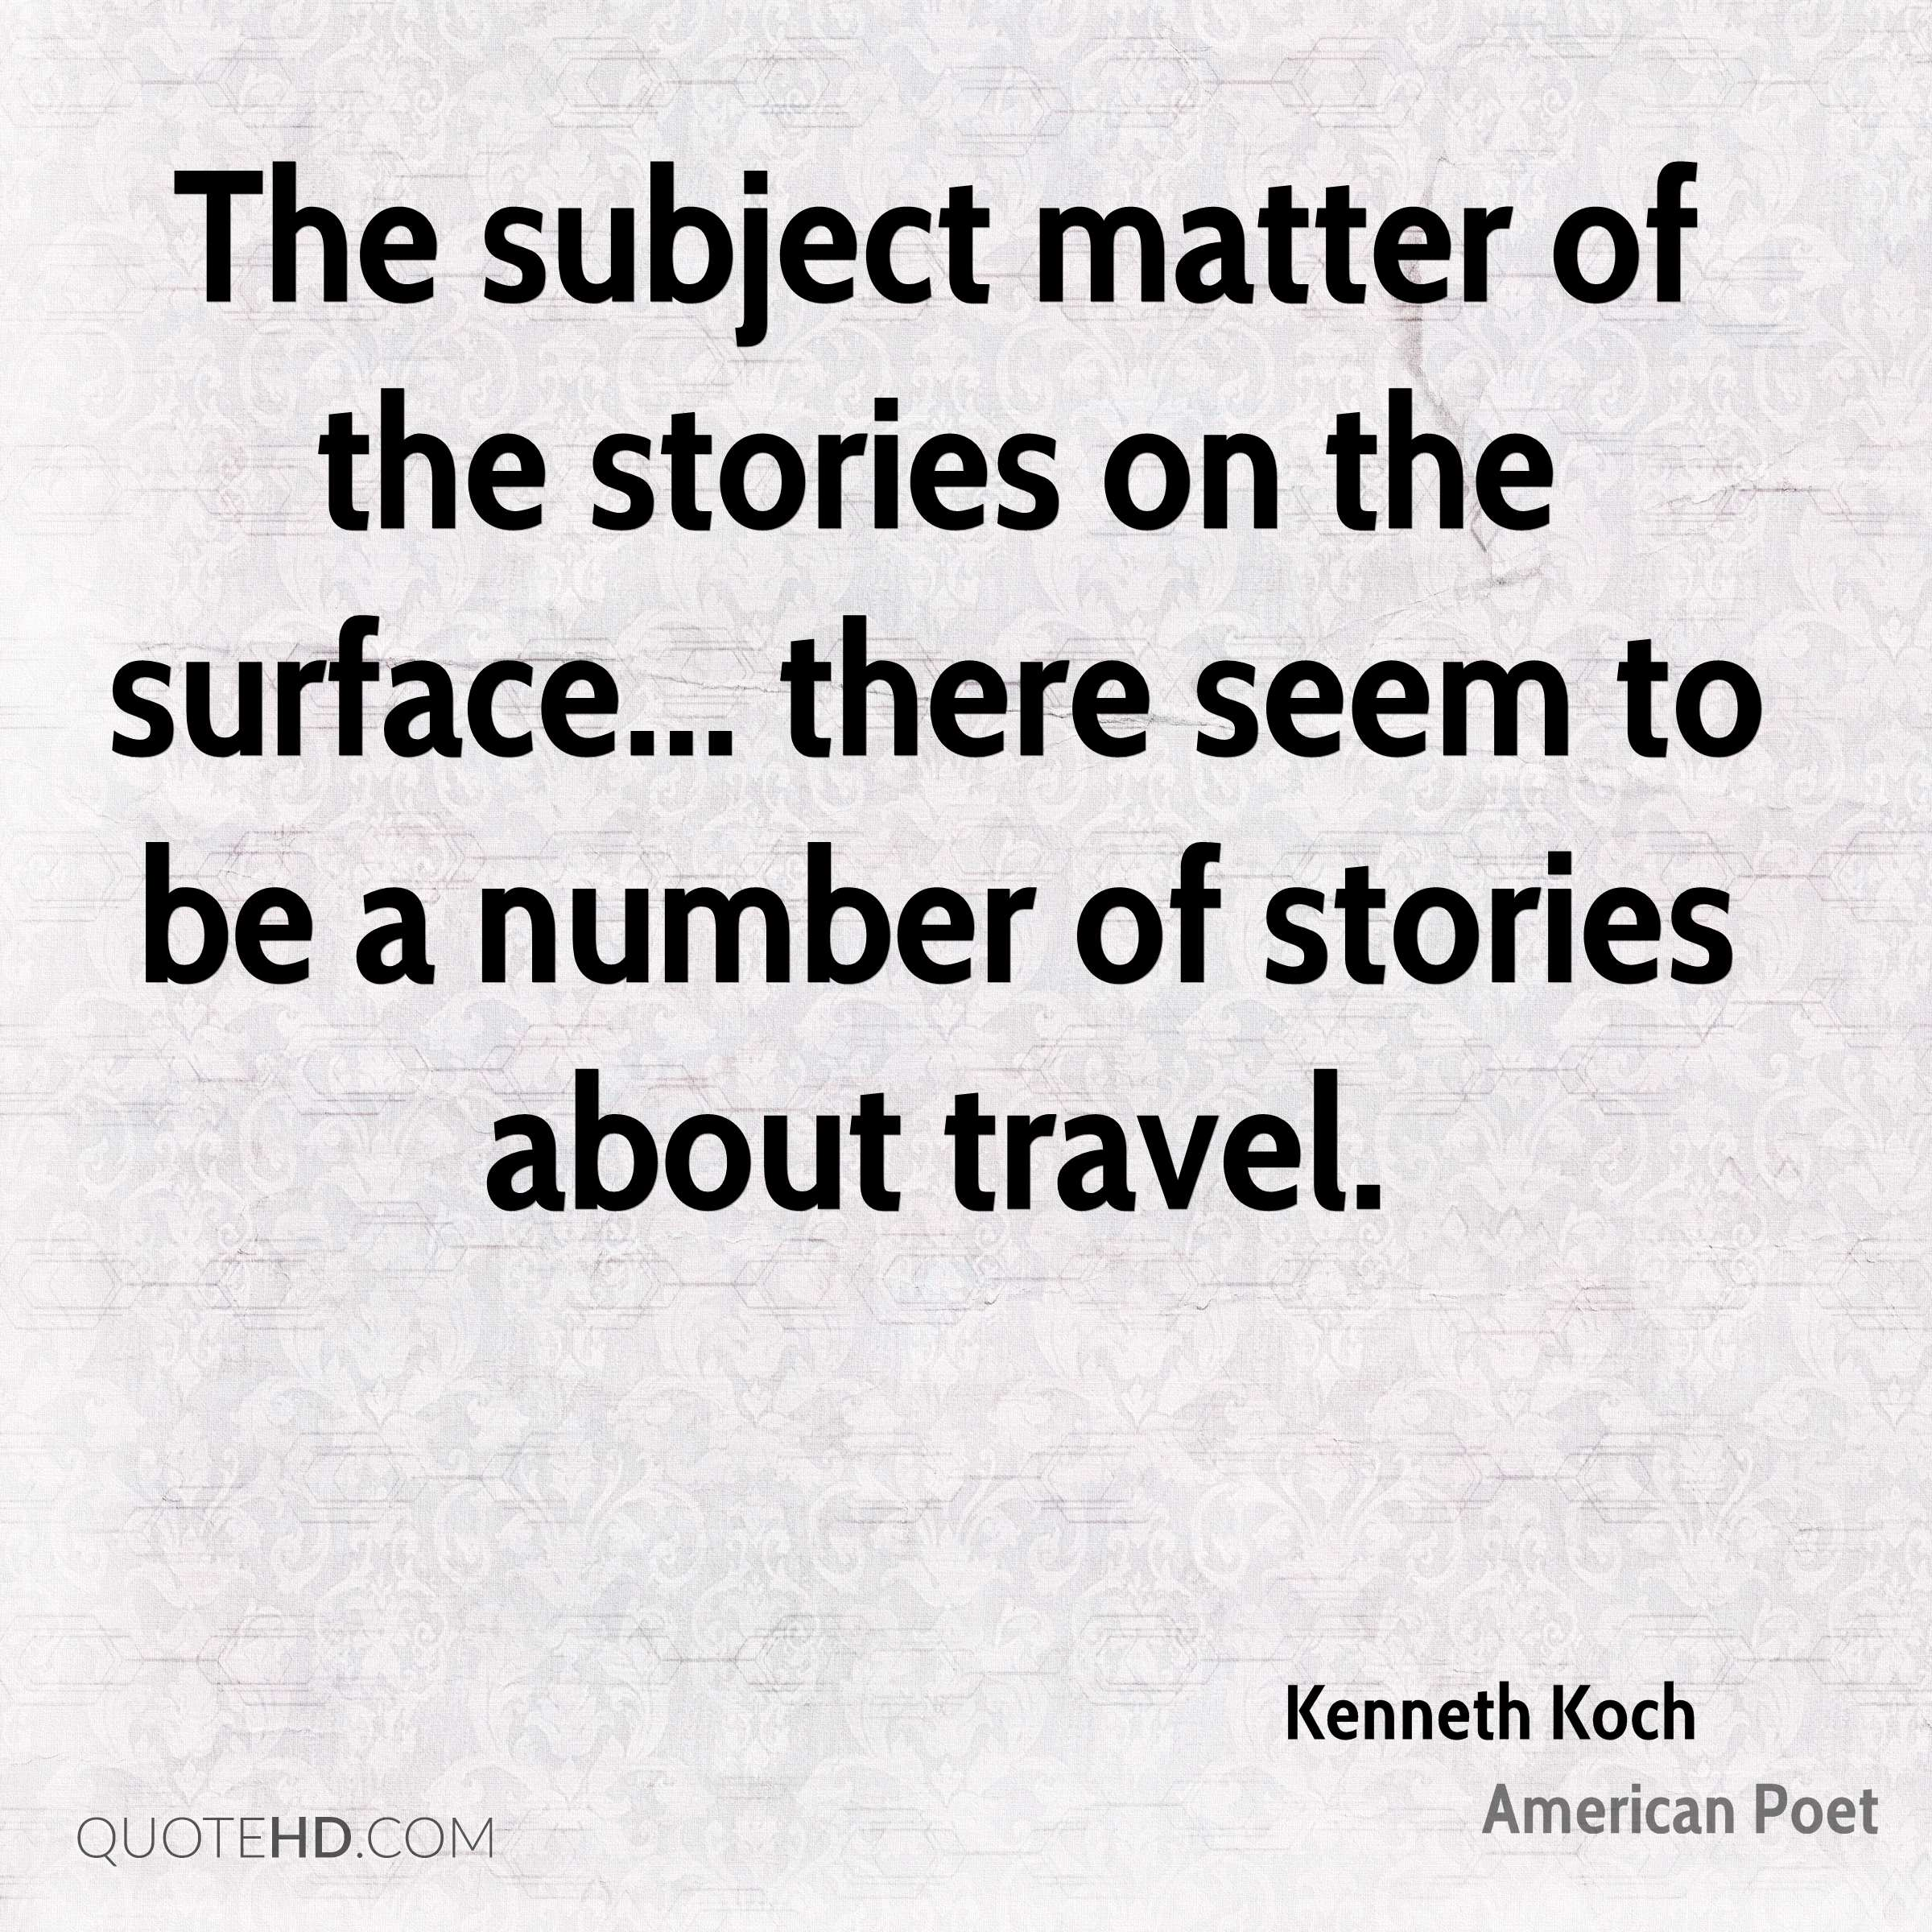 The subject matter of the stories on the surface... there seem to be a number of stories about travel.